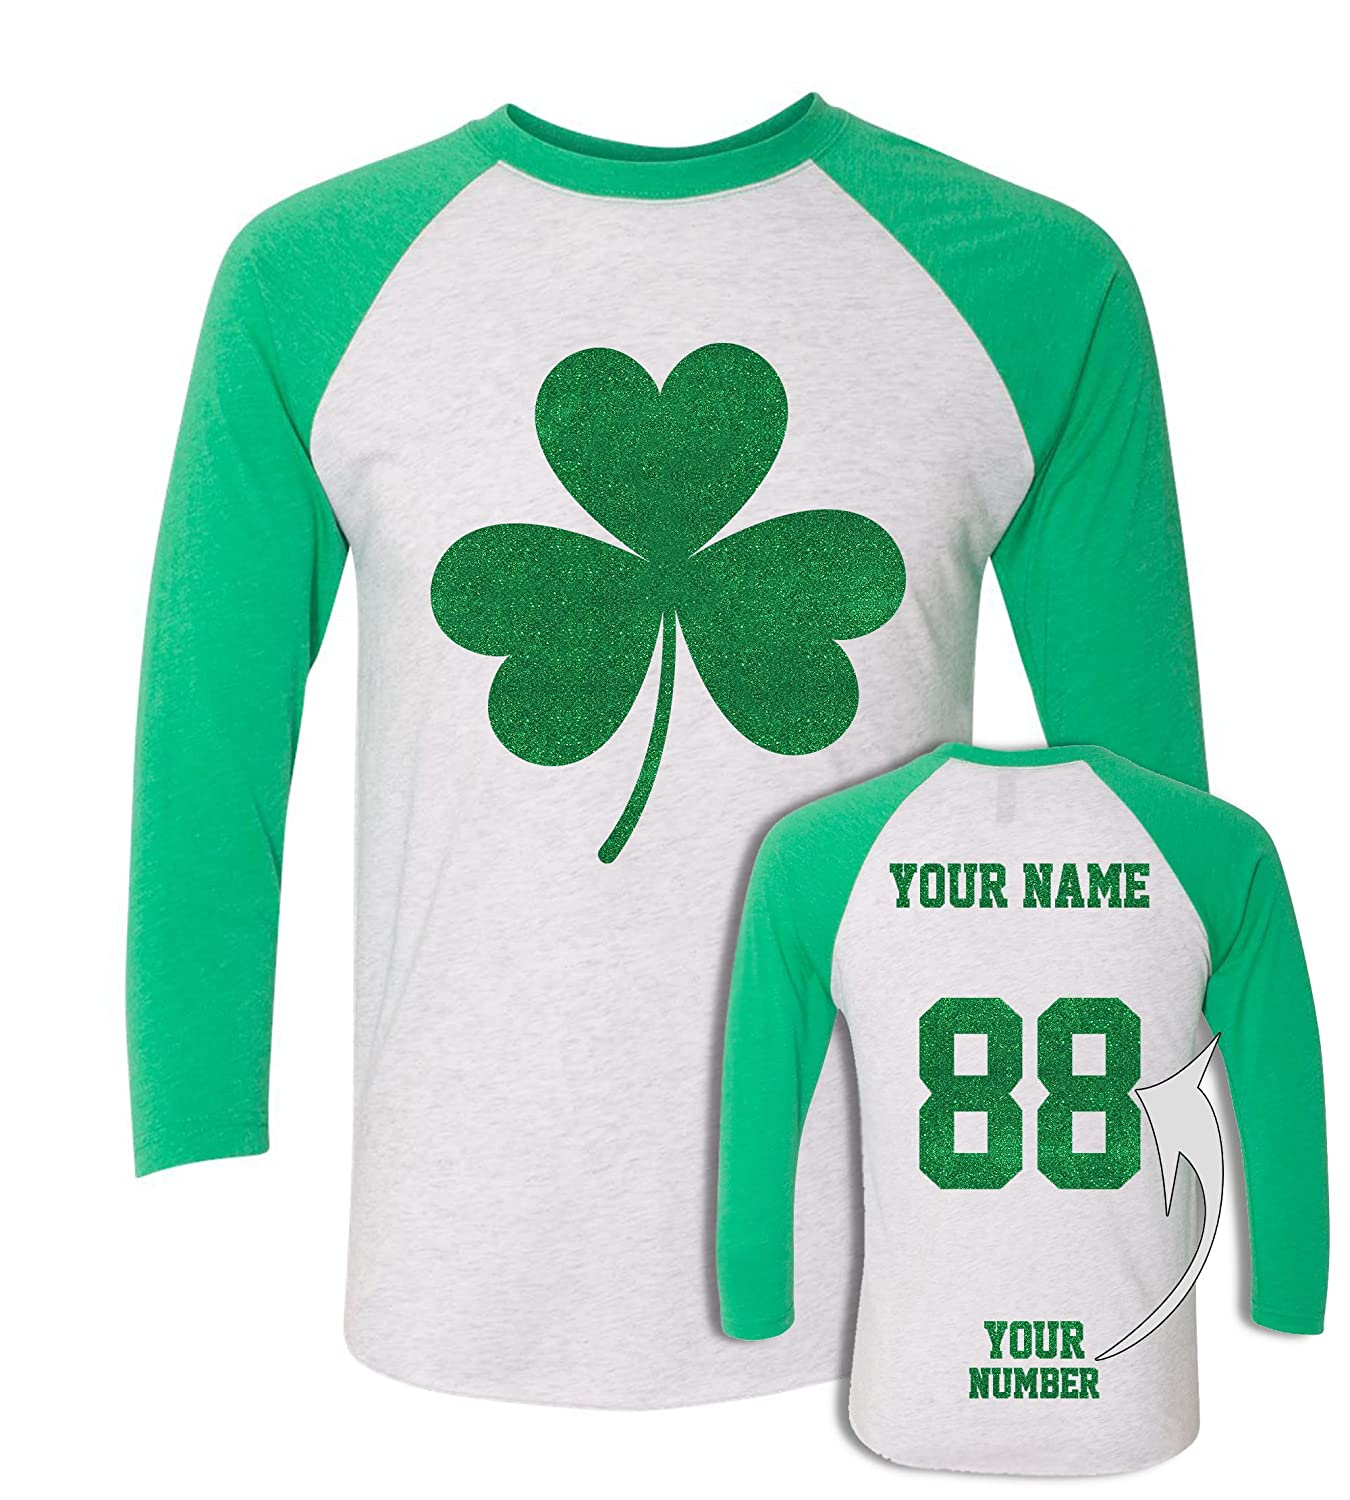 b0cb6a9c DESIGN YOUR OWN sparkly St. Patricks Day costume with your name and number.  JERSEY STYLE glitter design on the back makes ...